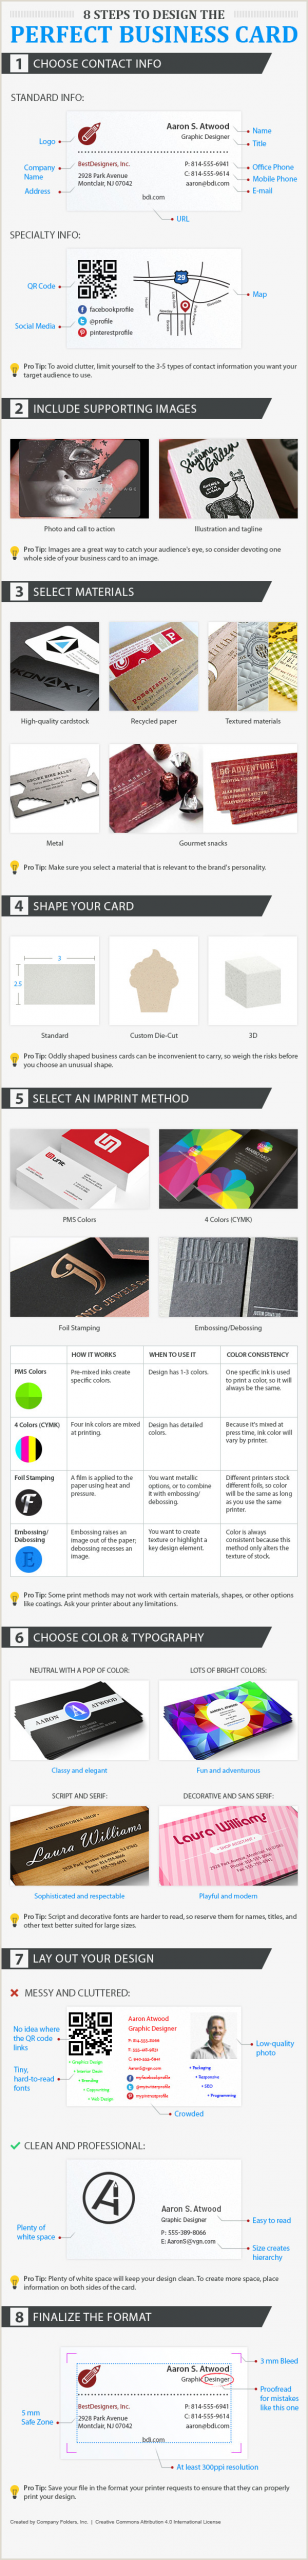 What Should Be On A Business Card How To Design The Perfect Business Card